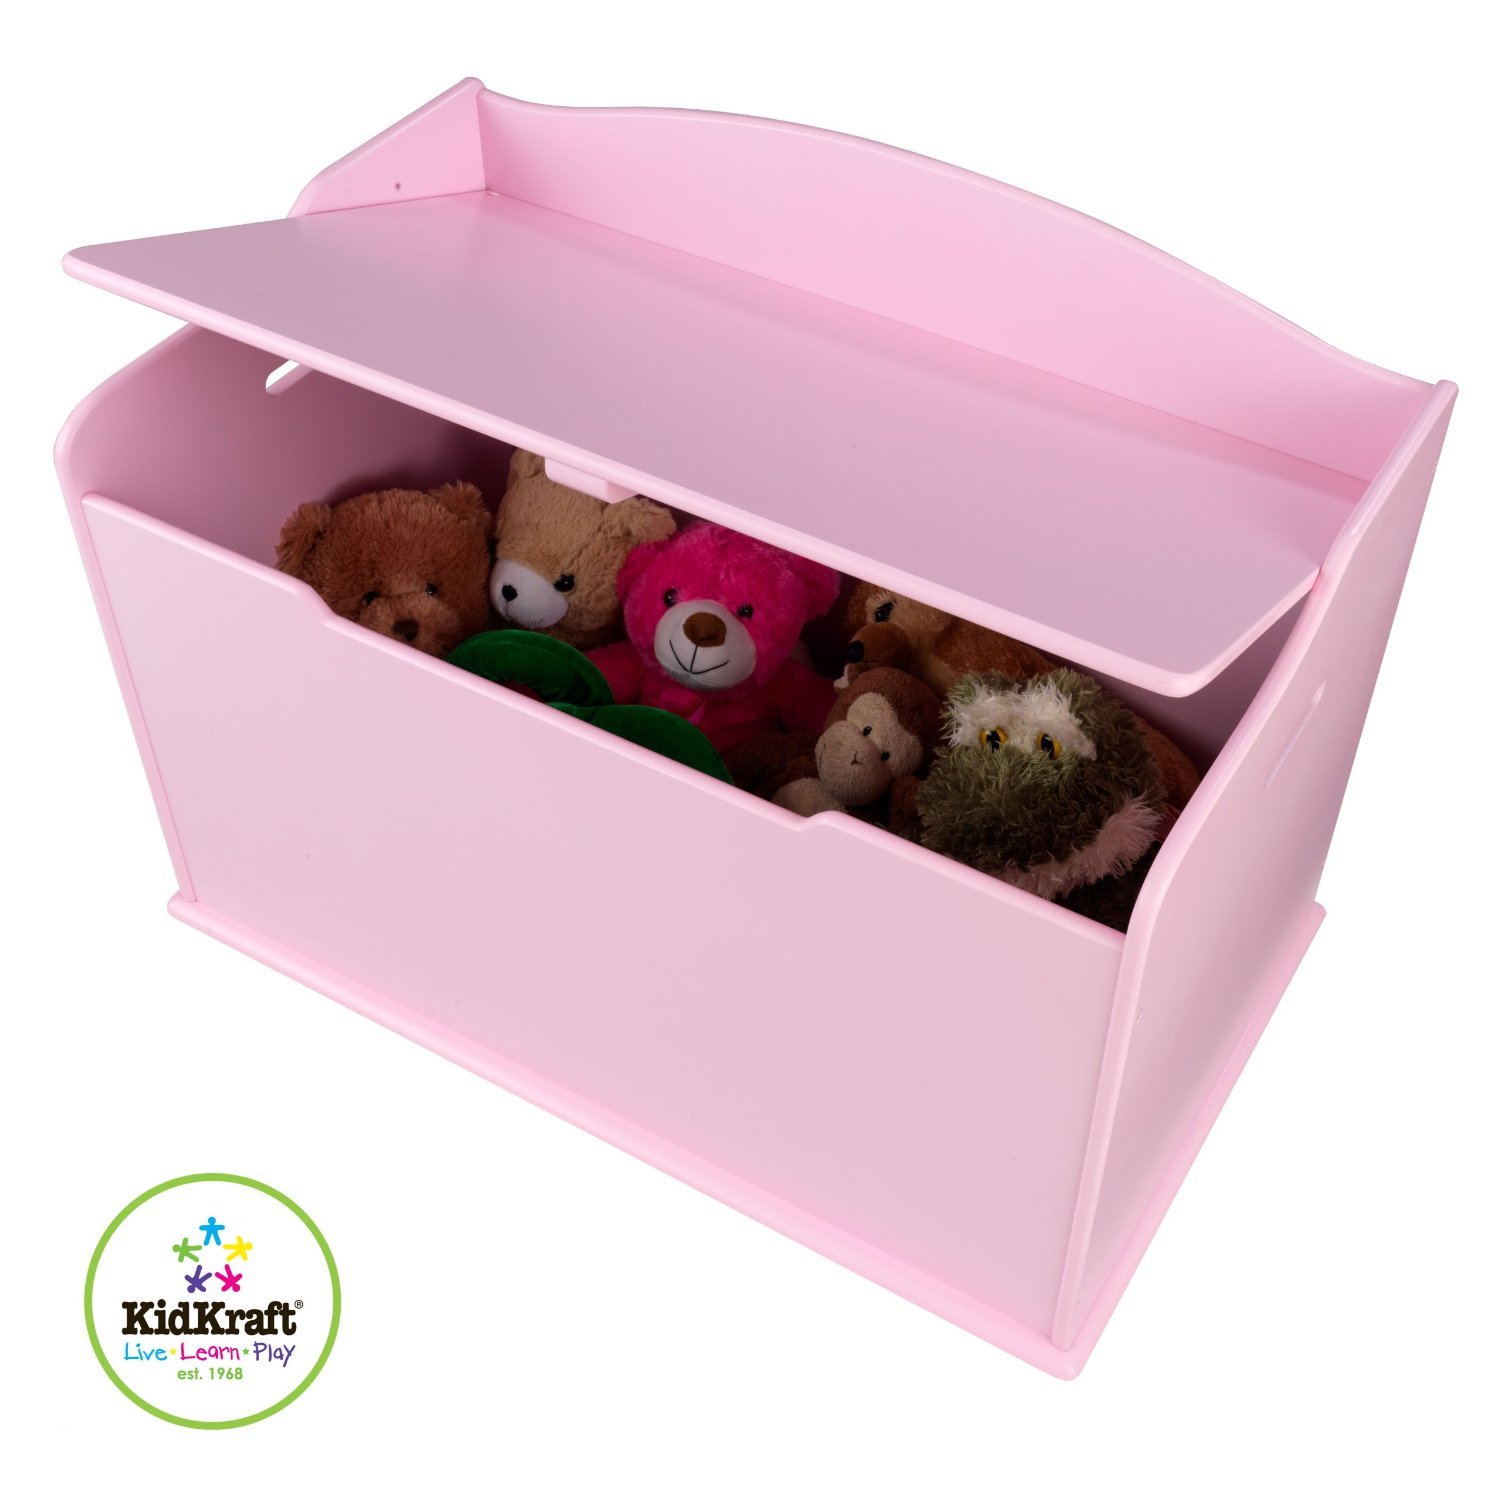 Best Toy Boxes And Chests For Kids : Top toy boxes for girls reviews kids and parents